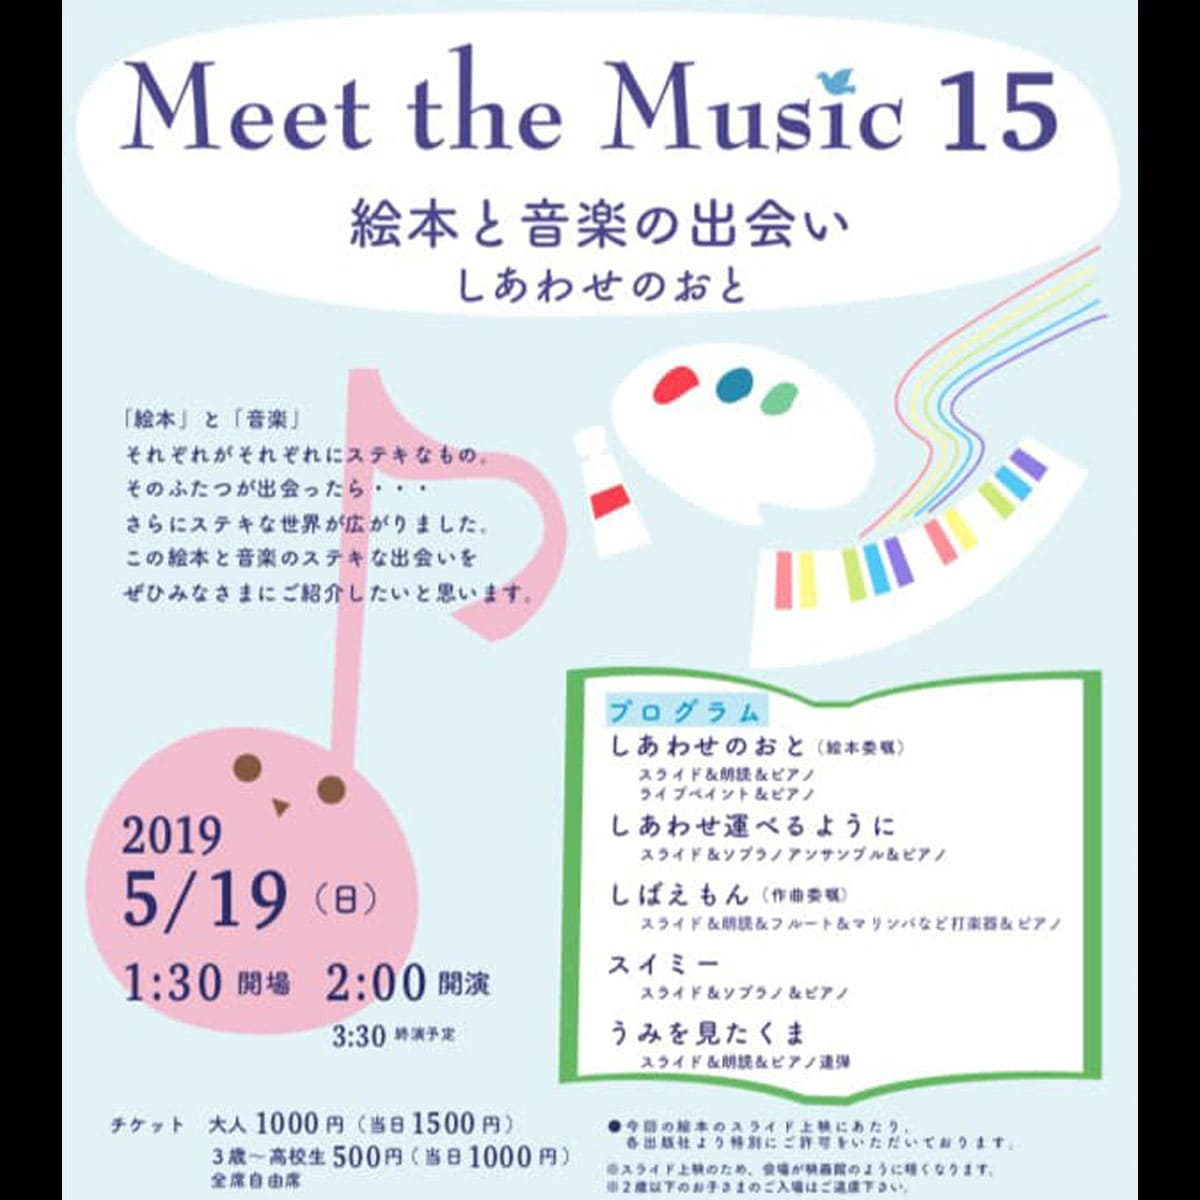 Meet the Music 15